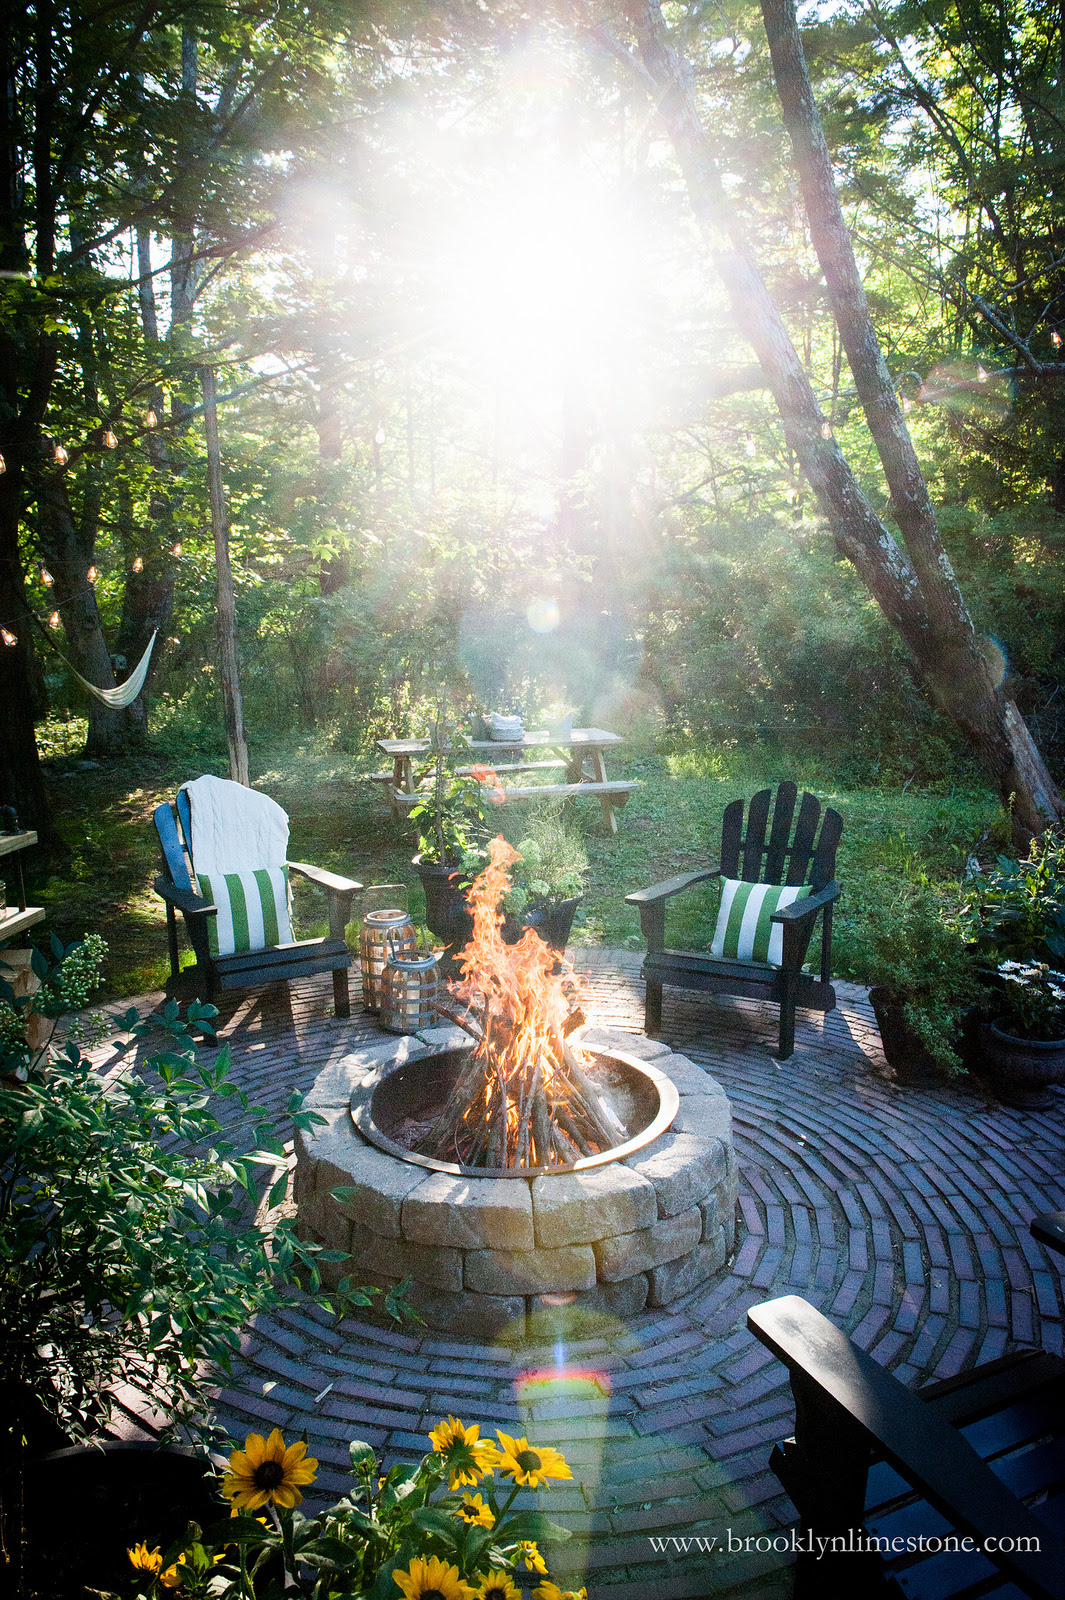 18 Fire Pit Ideas For Your Backyard - Best of DIY Ideas